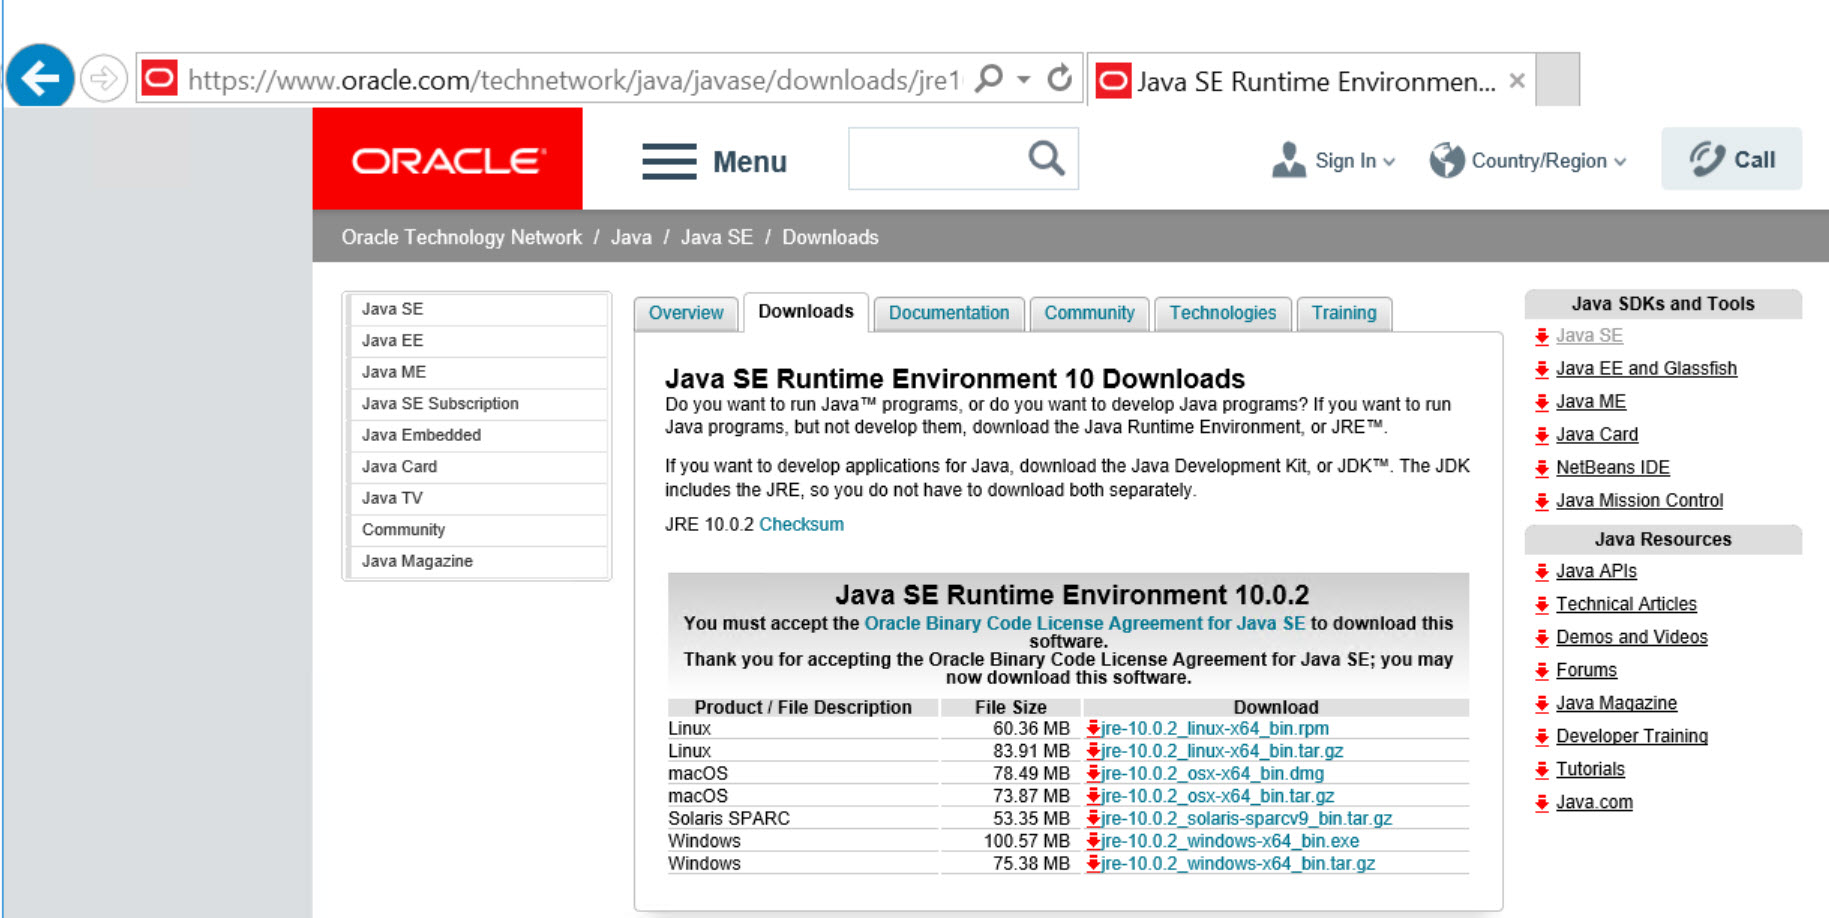 SQL SERVER 2019 - Oracle JRE 7 Update 51 (64 Bit) or Higher